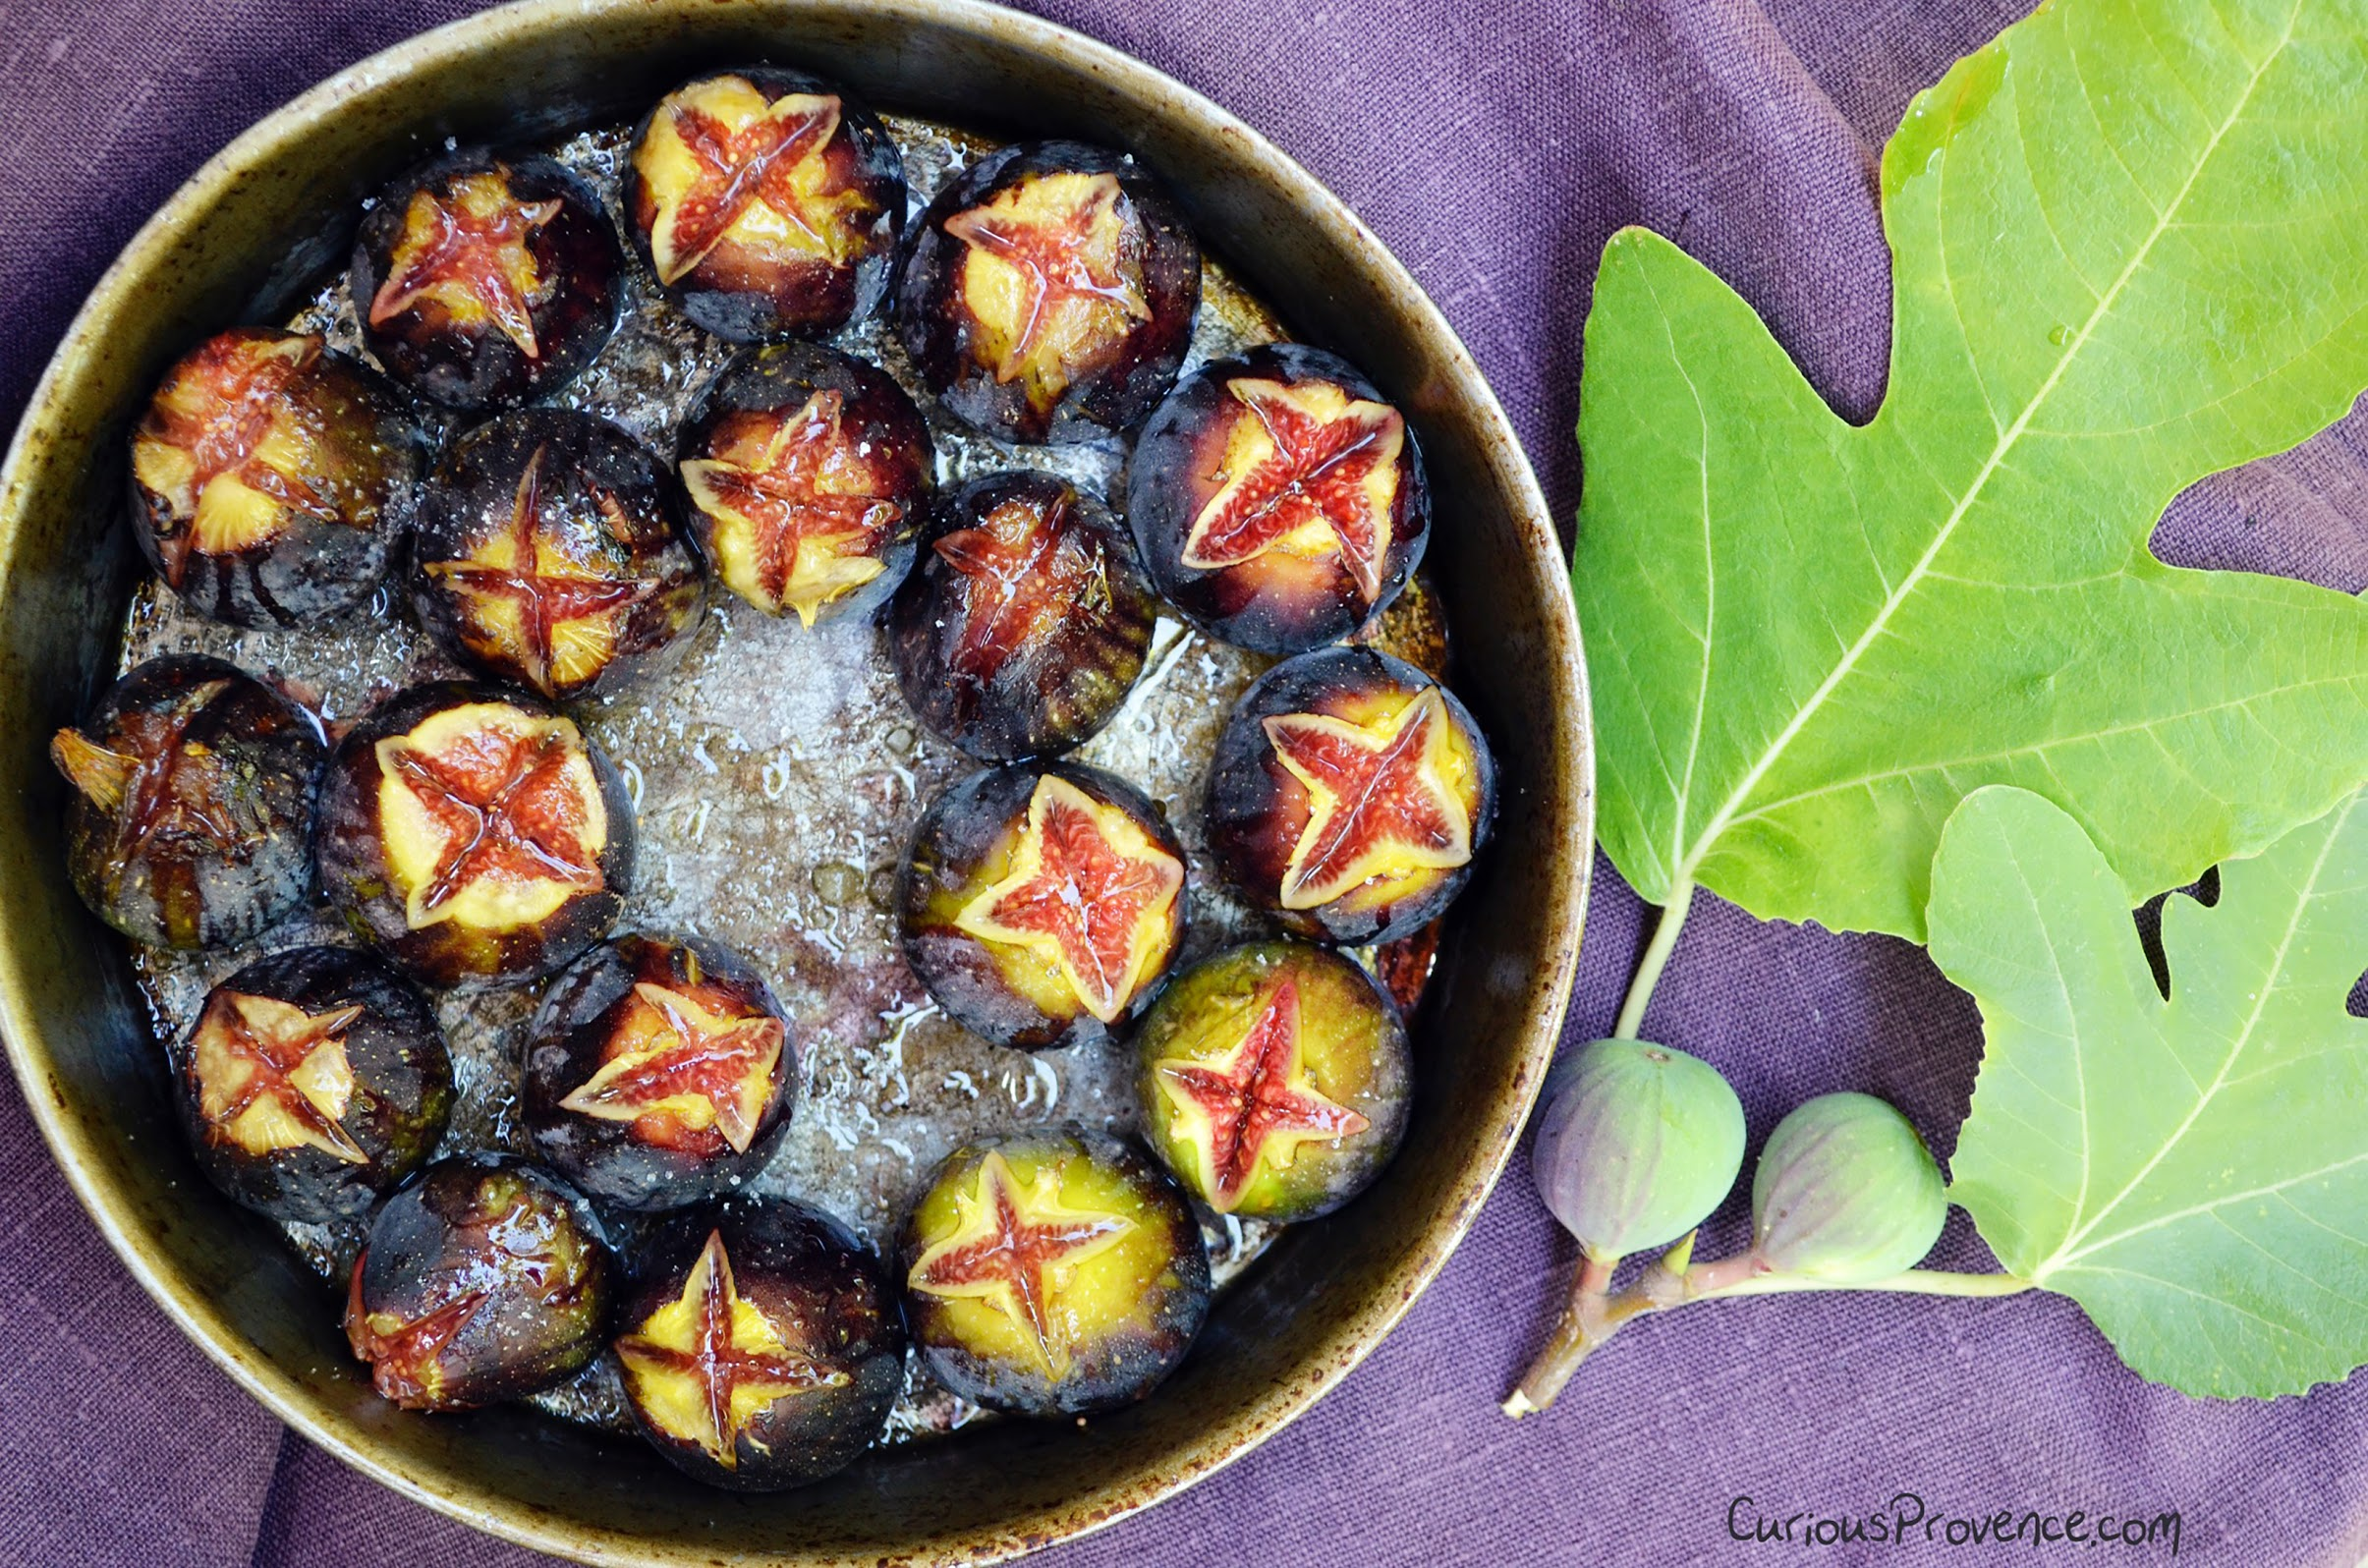 Ashley Curious Provence blog figs dish food